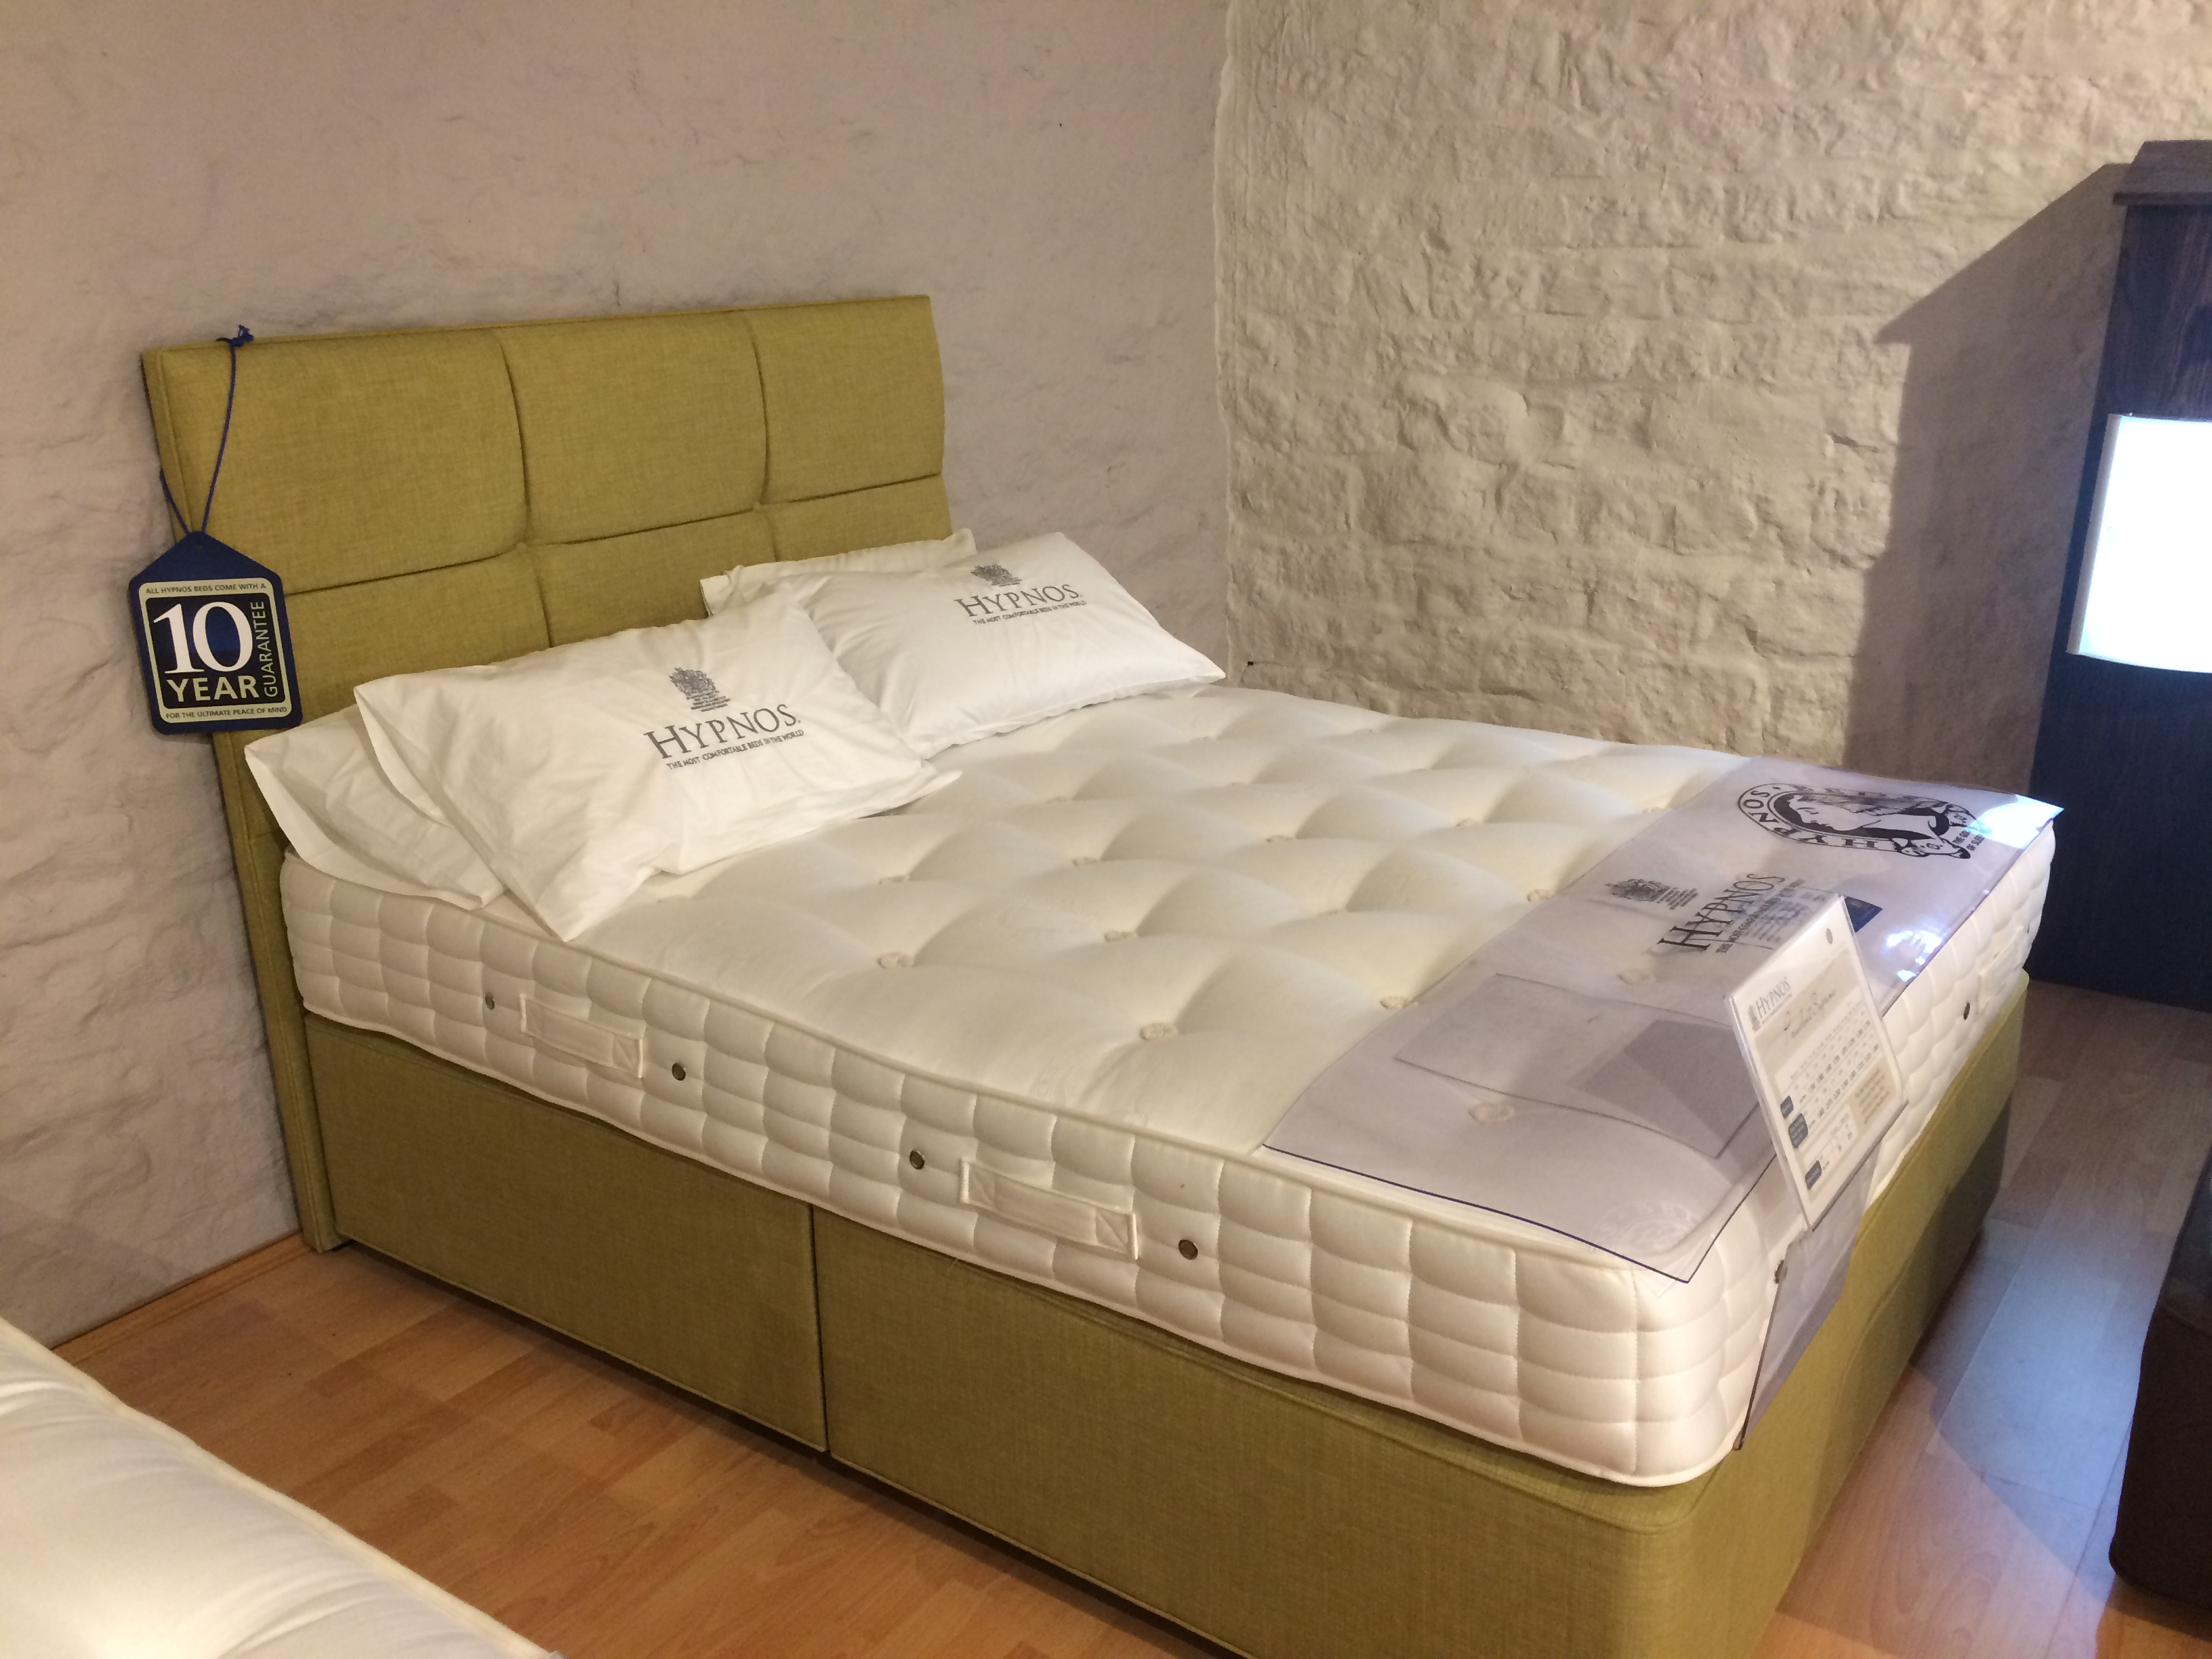 The Hypnos President Supreme  Ex Display. Ex Display Beds included in the January Sale   The Carriage